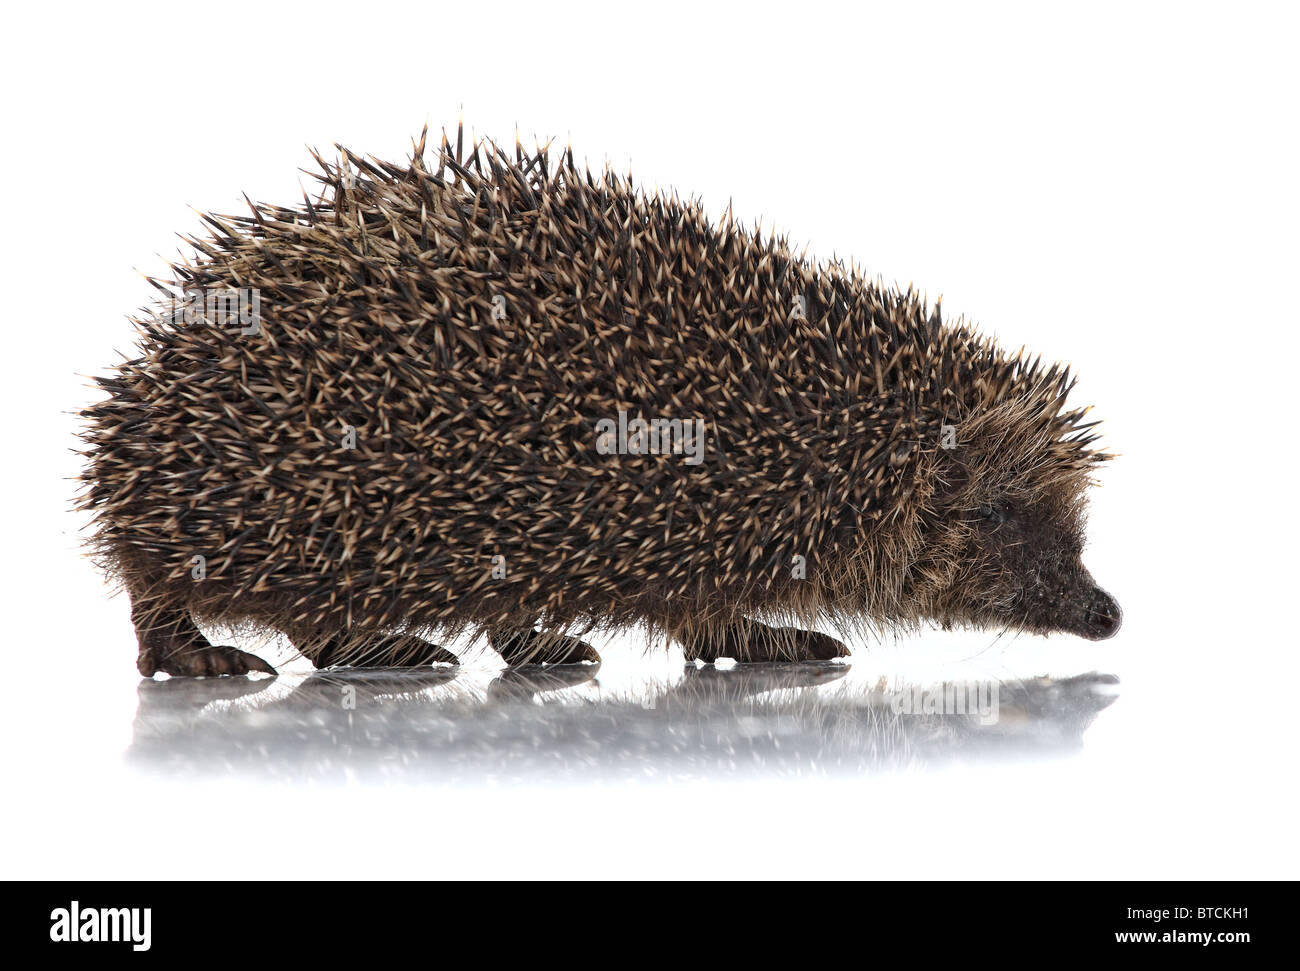 closeup of hedgehog on white background - Stock Image